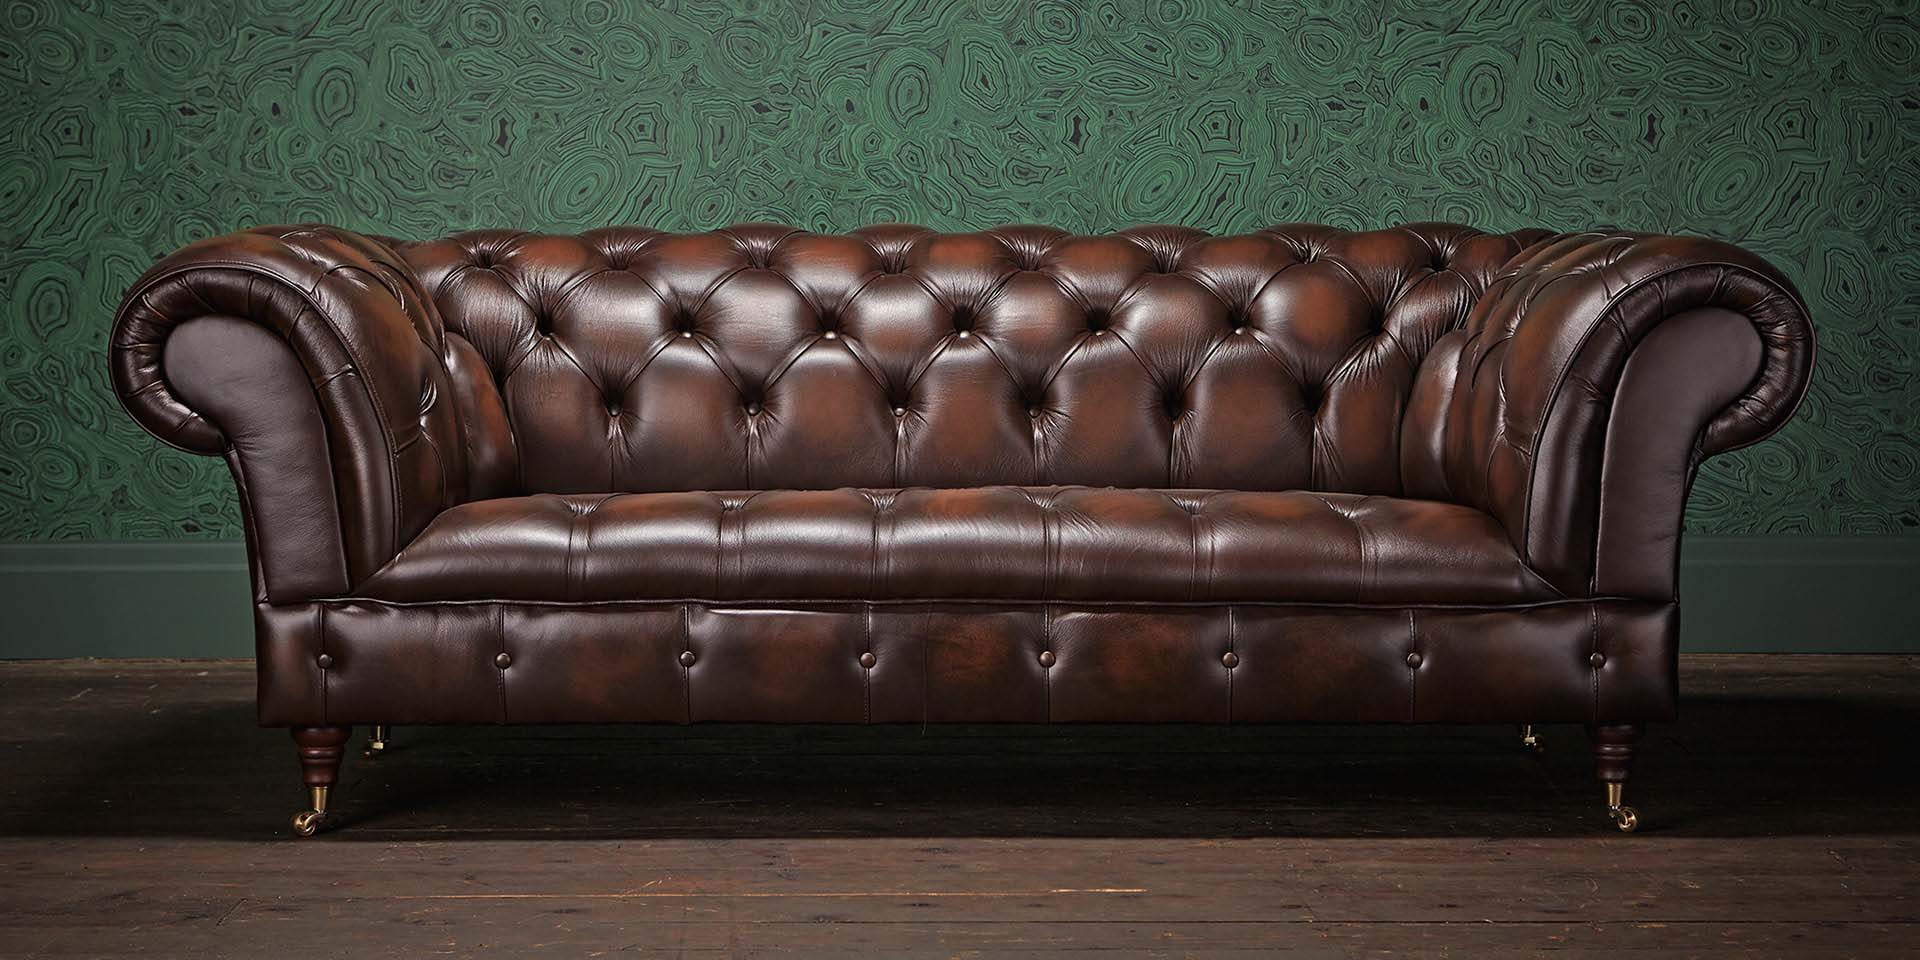 leather chesterfield sofa from: £1071.94click here to buy hckjfch